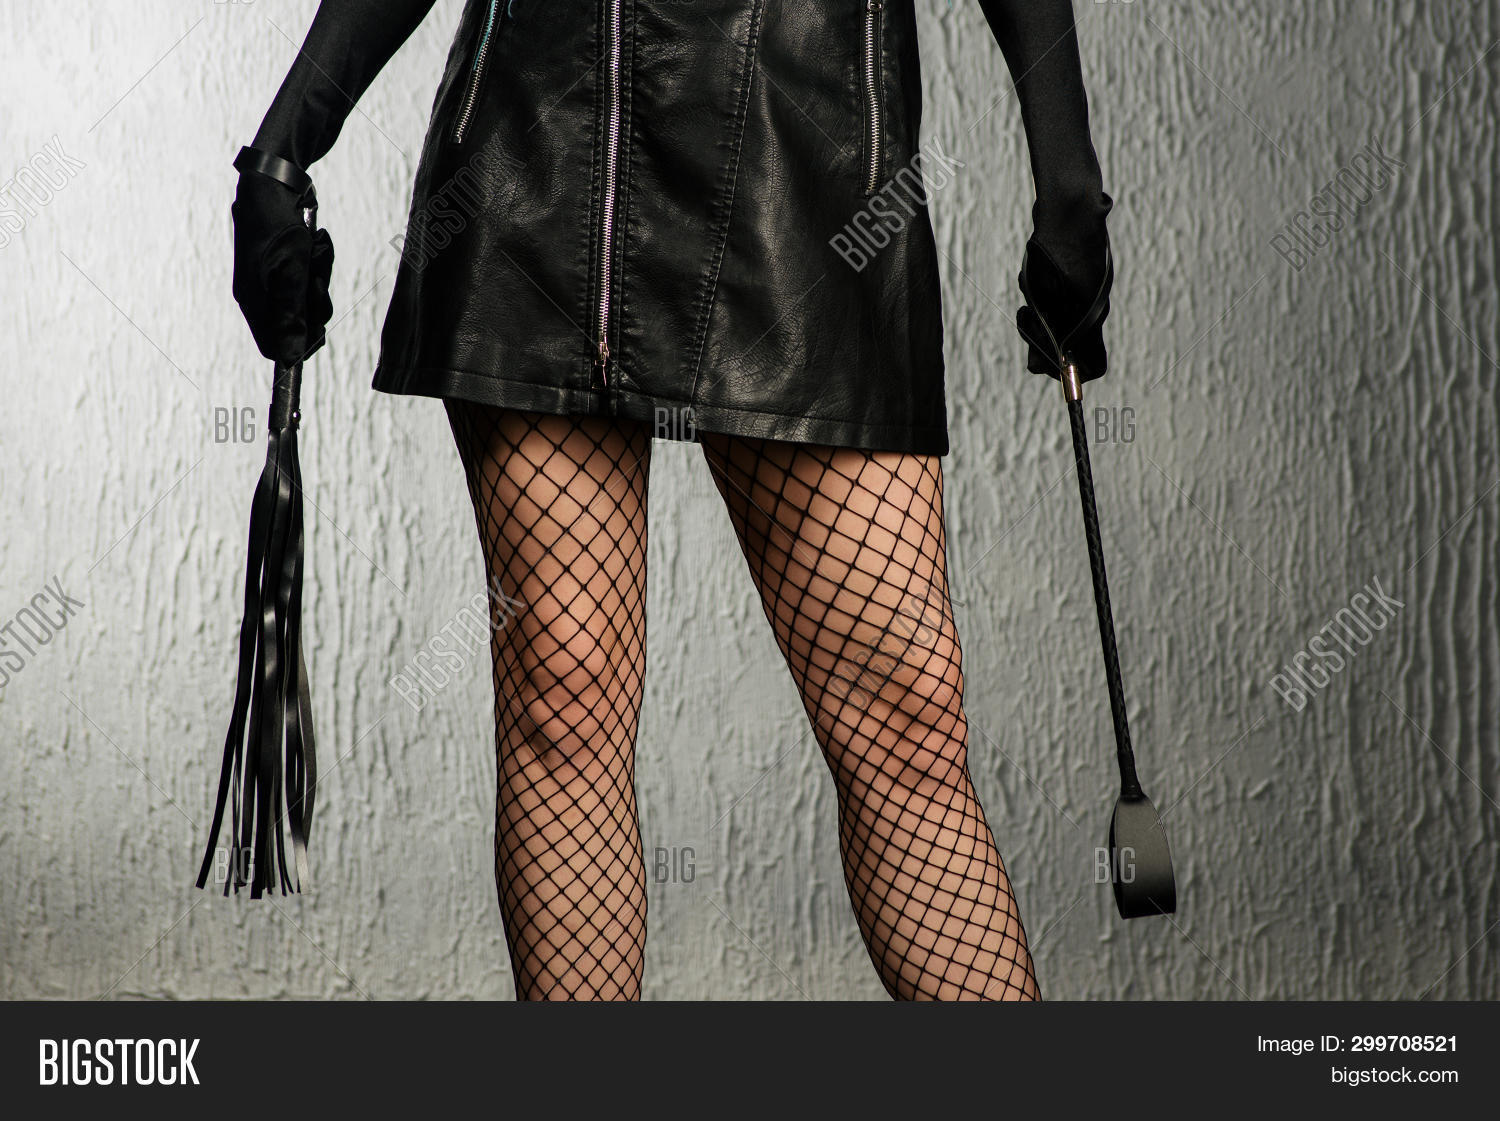 The Dominant Woman In A Leather Dress With A Stack And A Whip In Her Hand. Bdsm Outfit - Image